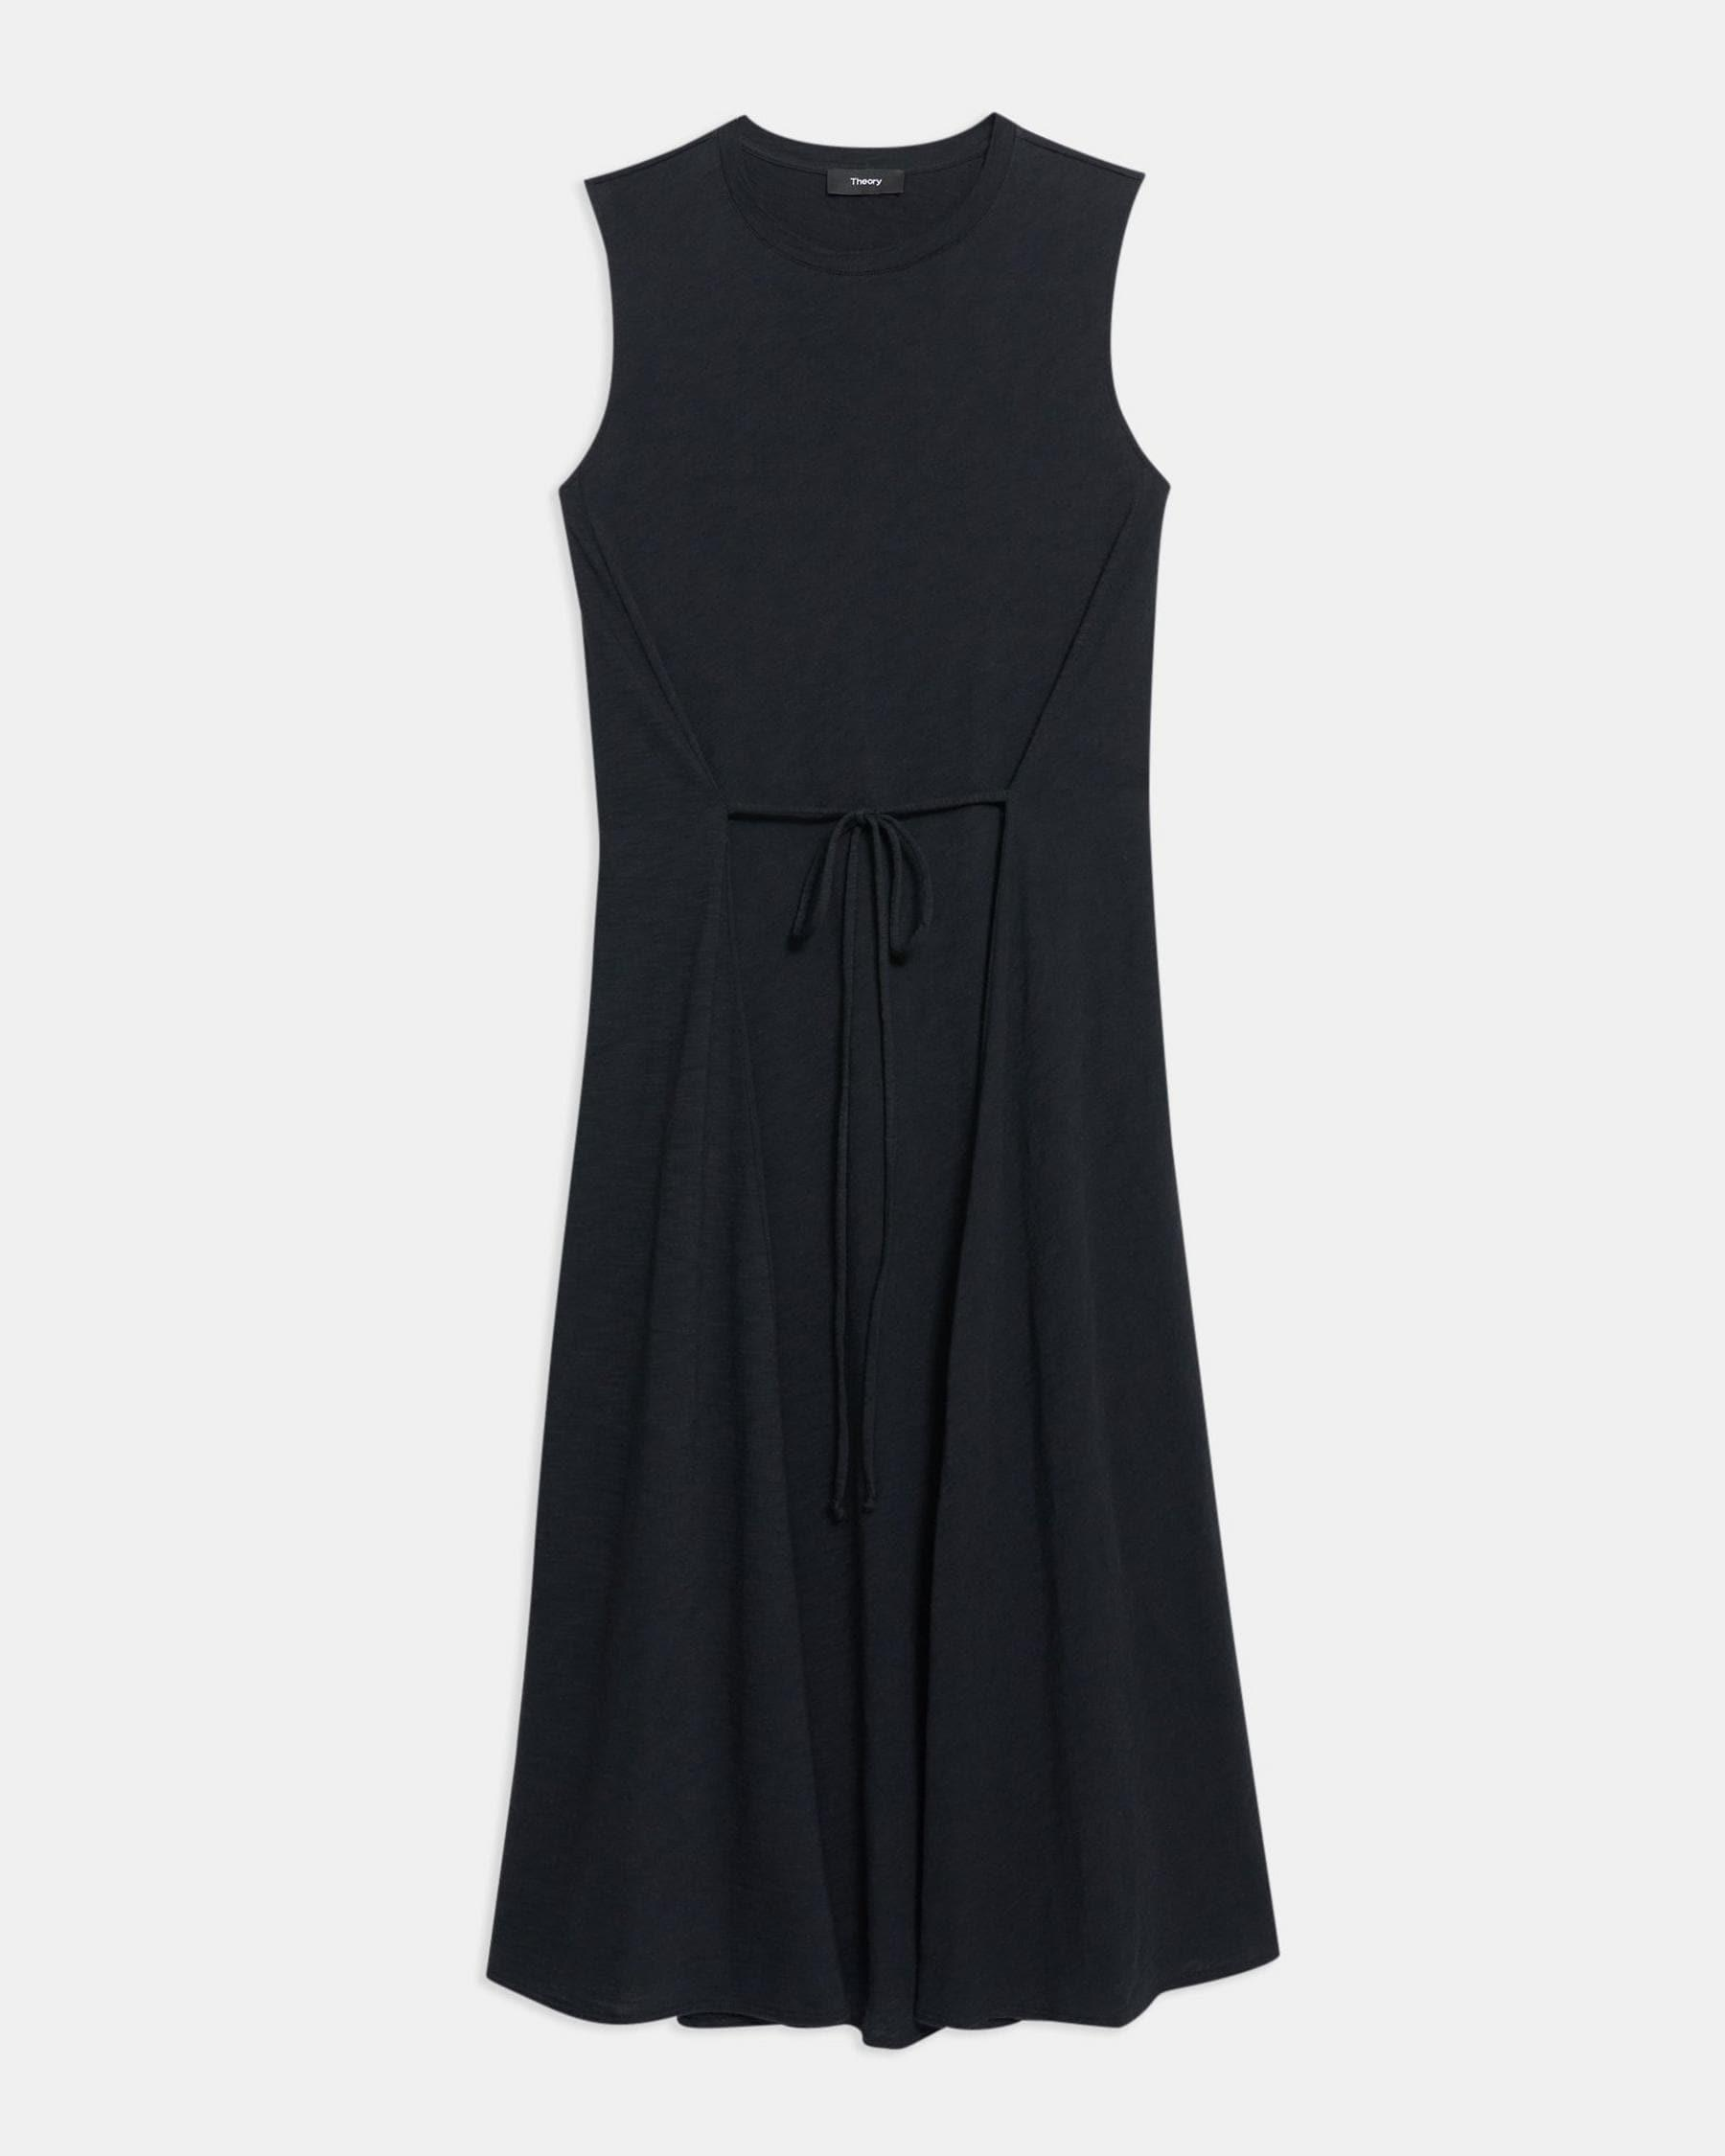 Cinched Tie Dress in Organic Cotton 5